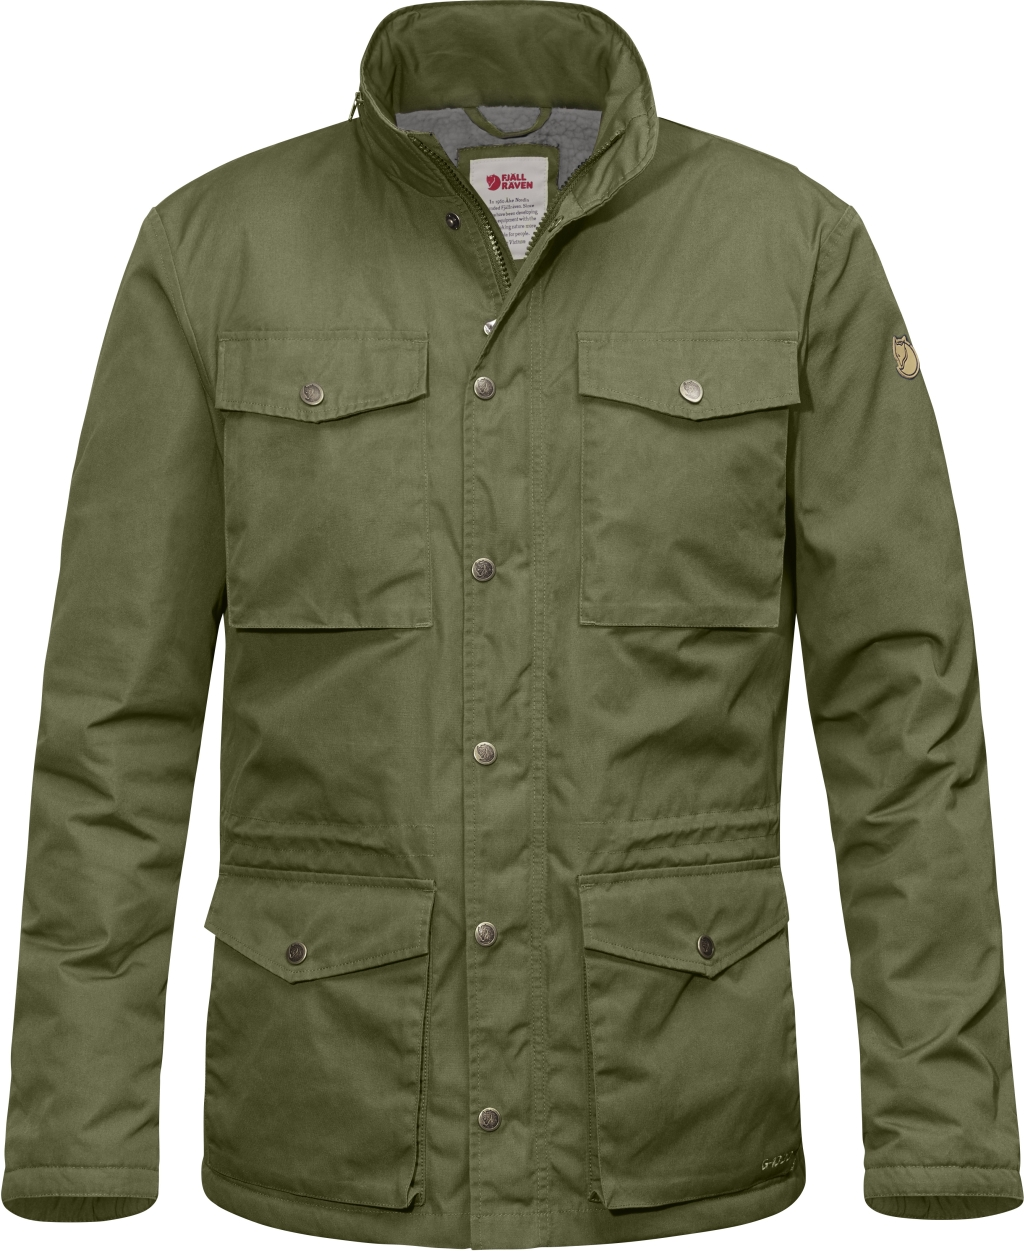 FjallRaven Raven Winter Jacket Green-30